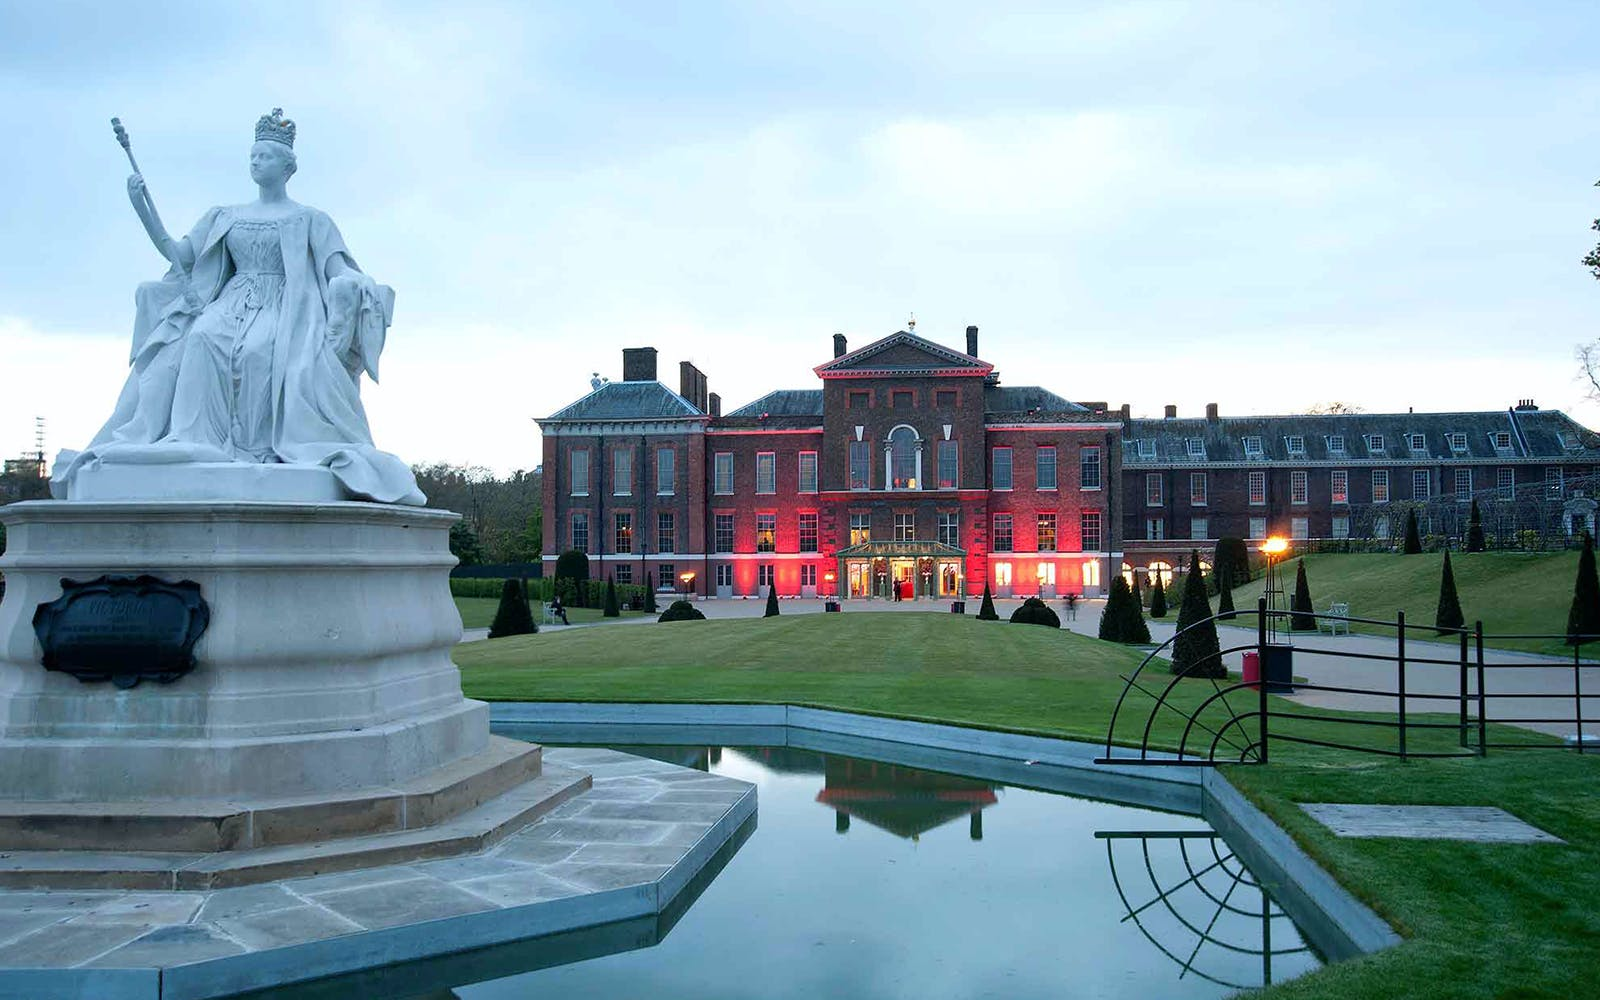 Visit to the Kensington Palace